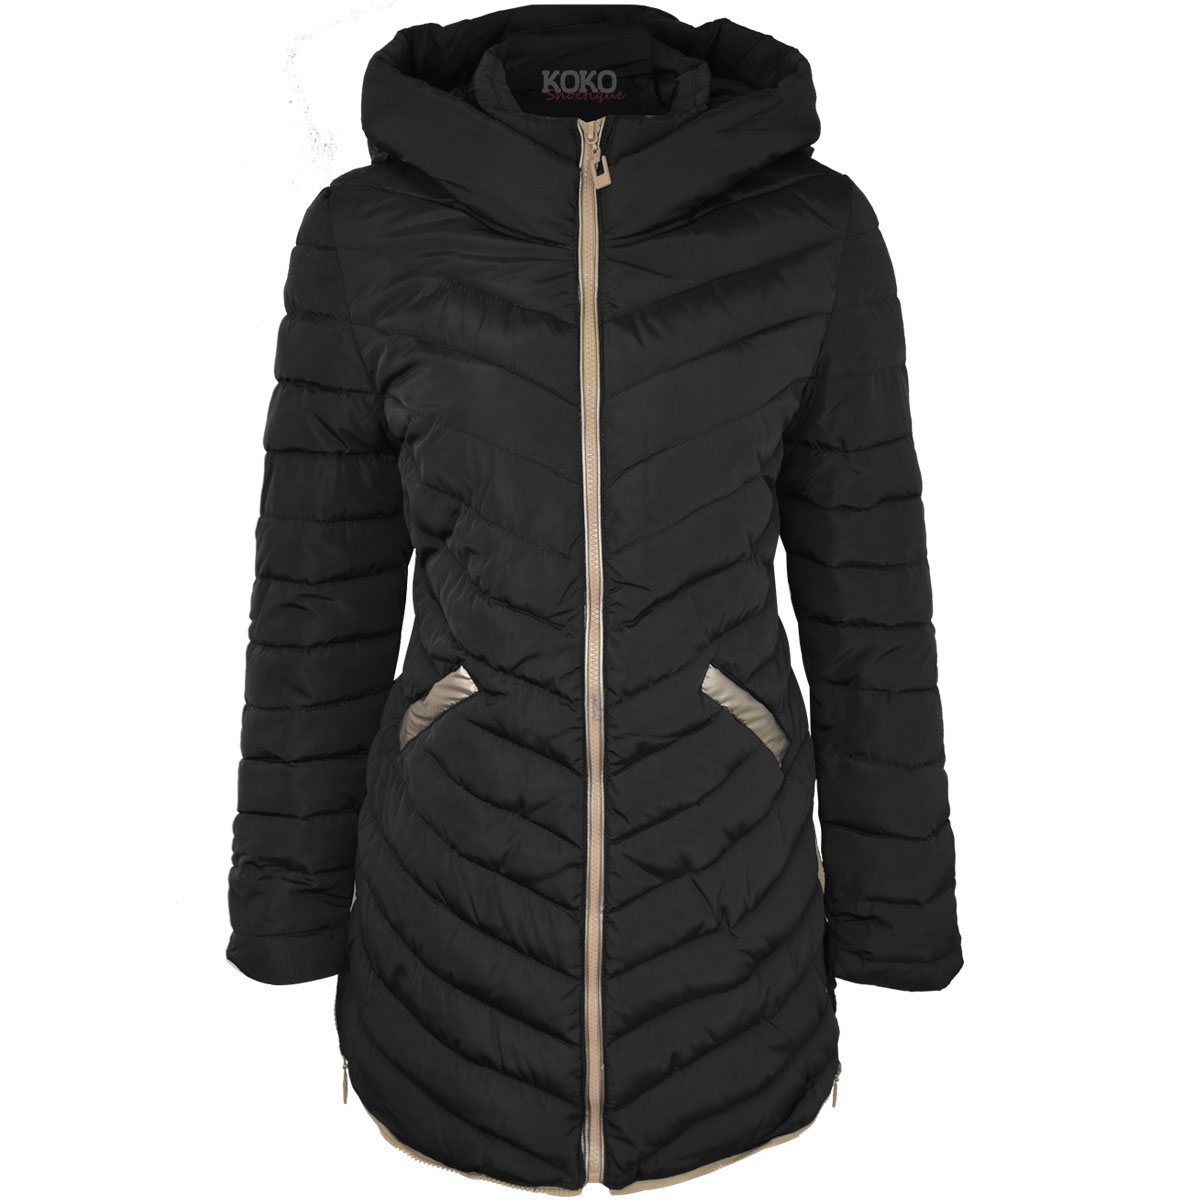 Explore our range of quilted & padded coats and jackets at Debenhams. You'll find the perfect coat to keep you warm and stylish this season.